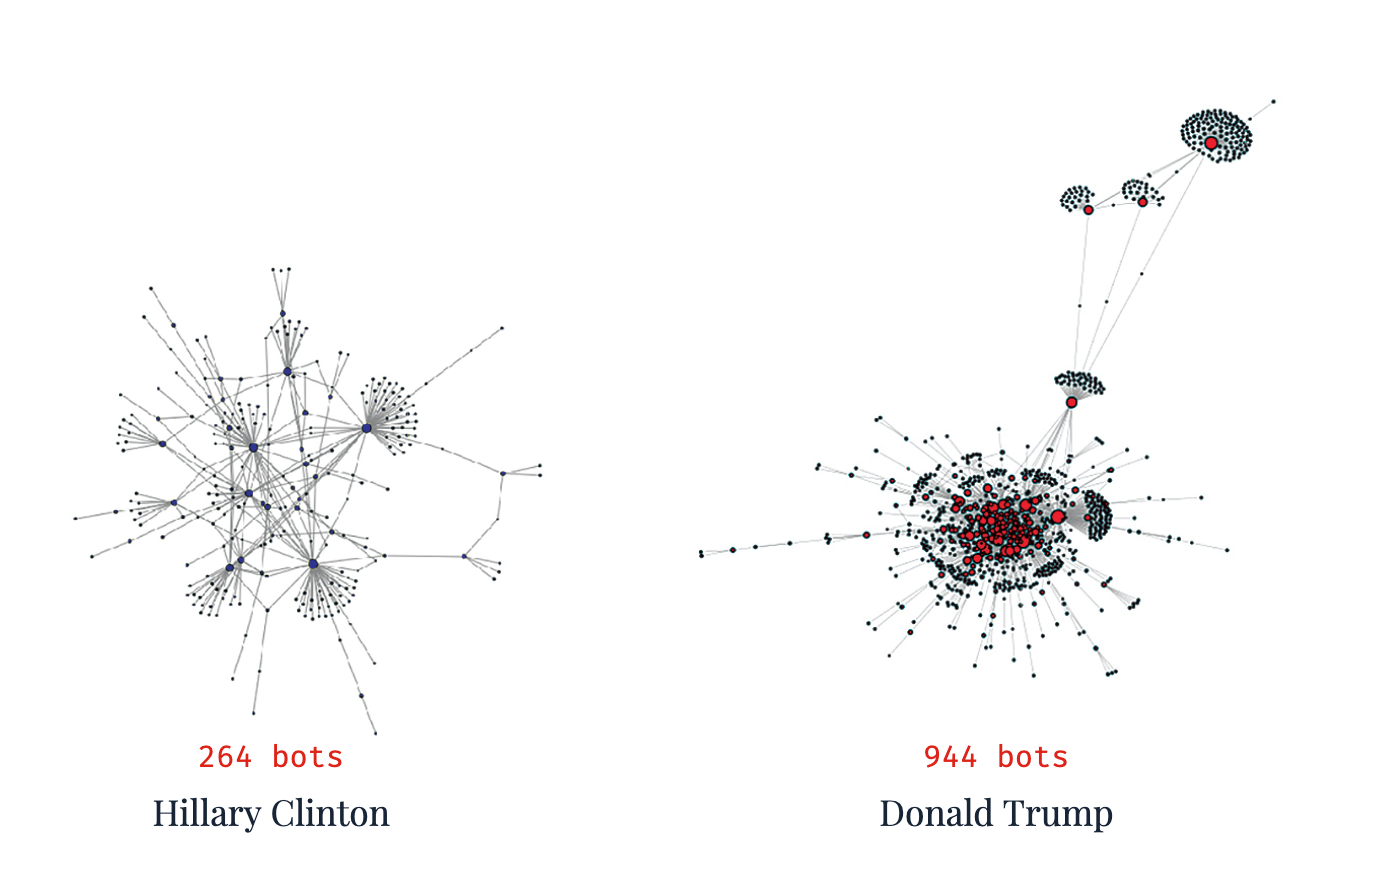 Graphic depictions of Bot networks of Clinton vs. Trump